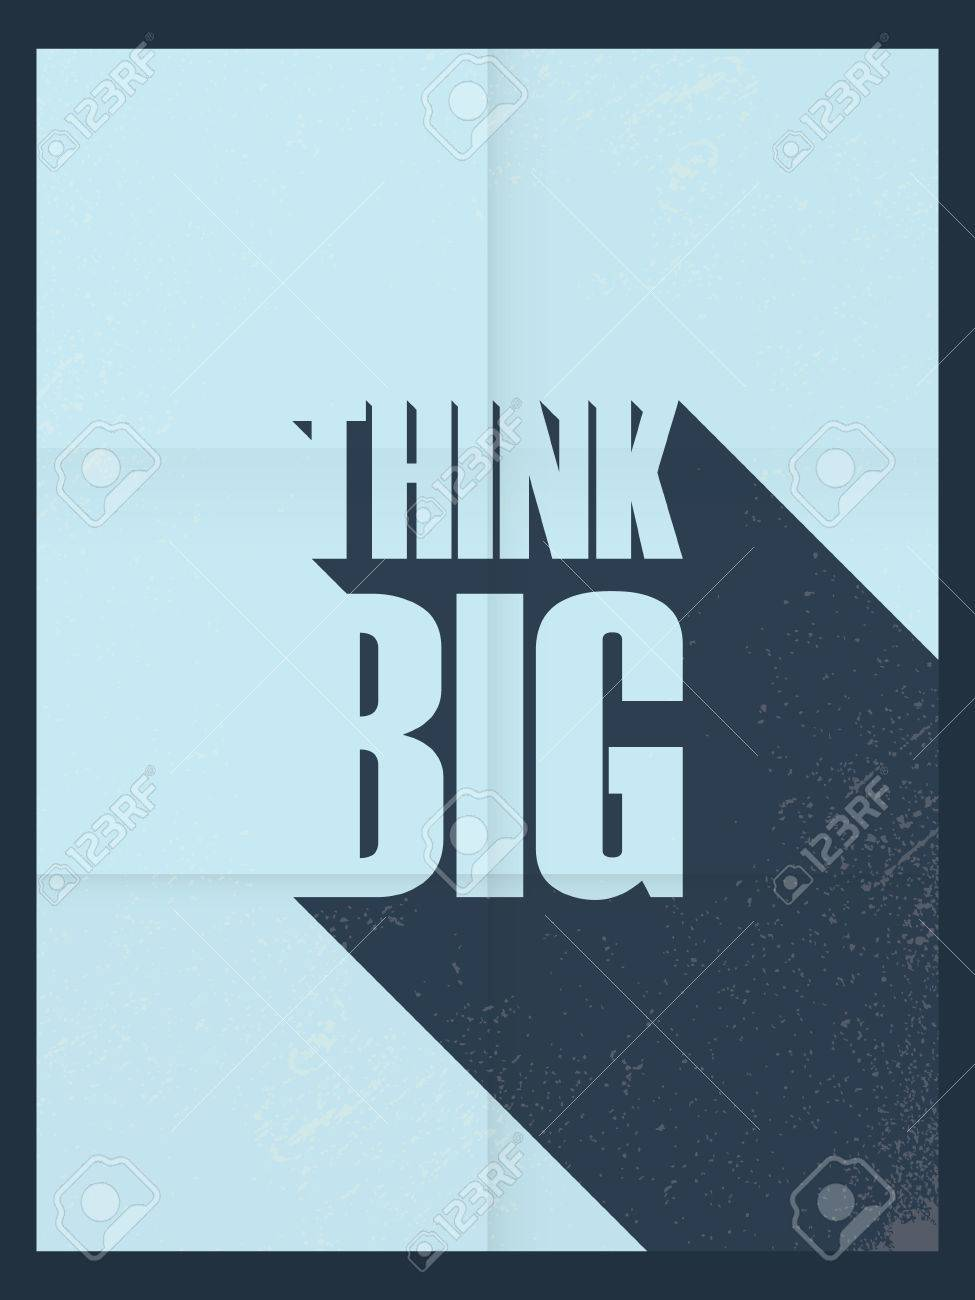 Poster design wallpaper - Think Big Motivational Poster Famous Quote Wallpaper Design Vintage Look Paper Background